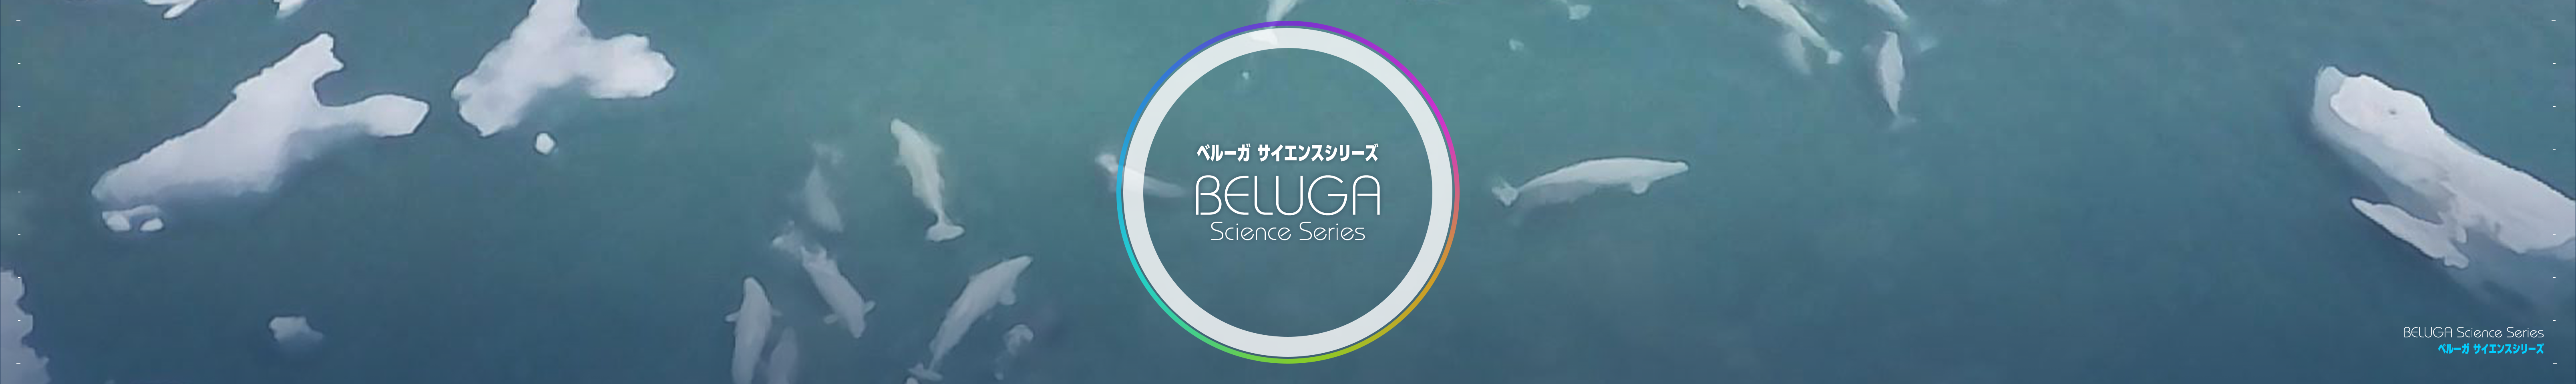 beluga_interval1.png#asset:223